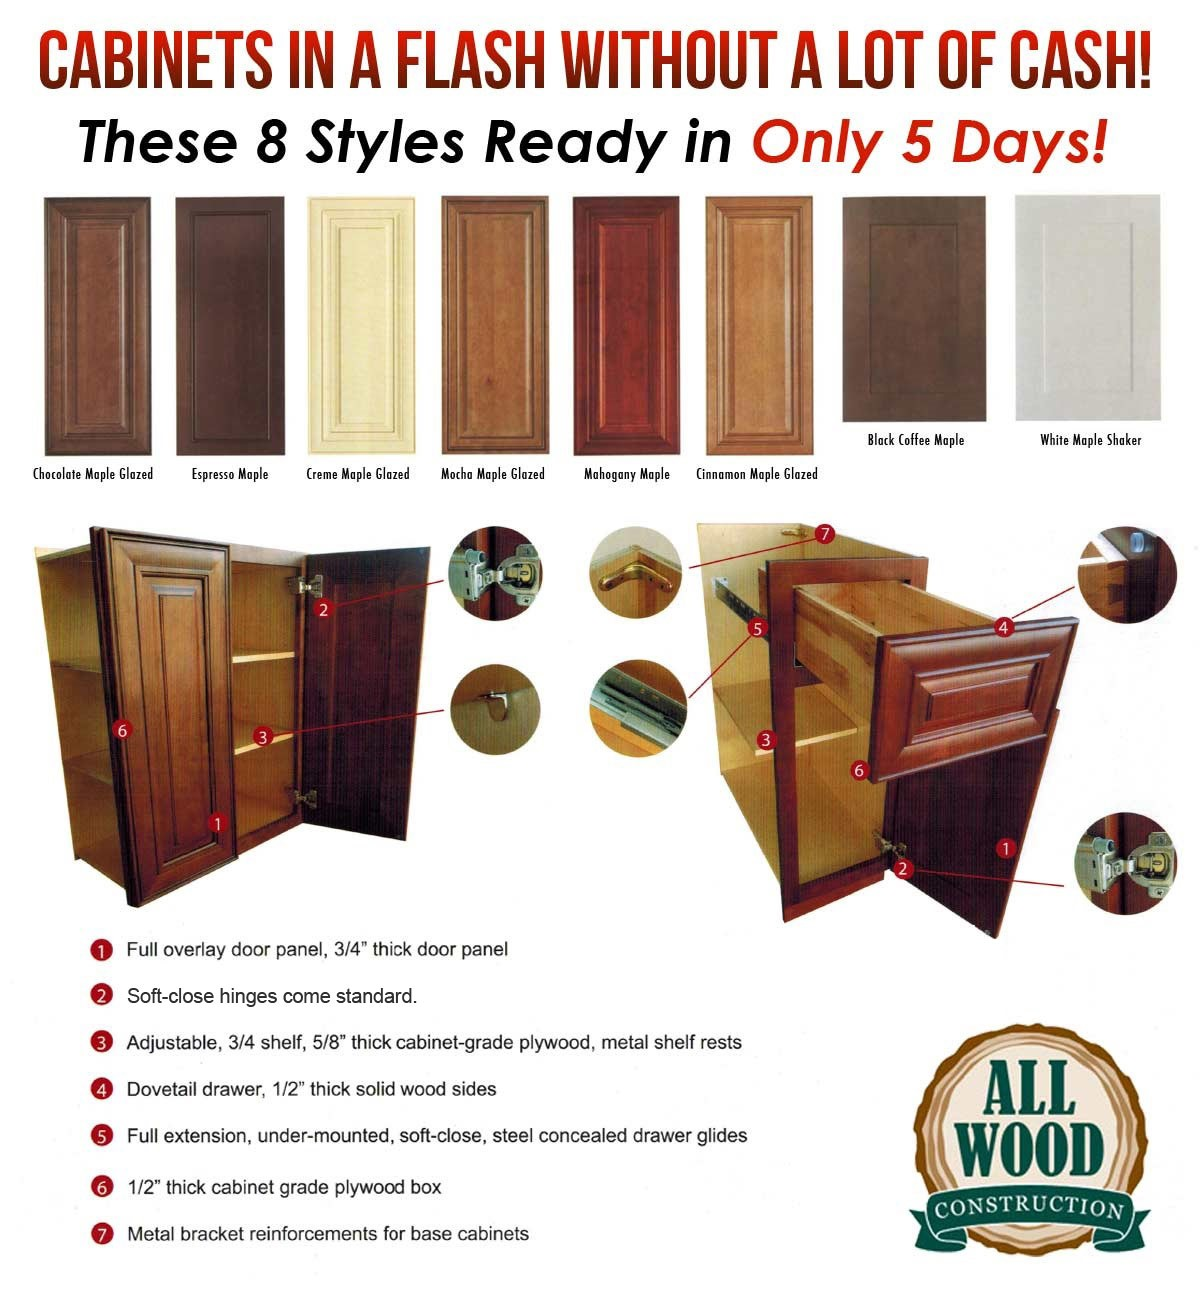 Cabinets in a Flash!